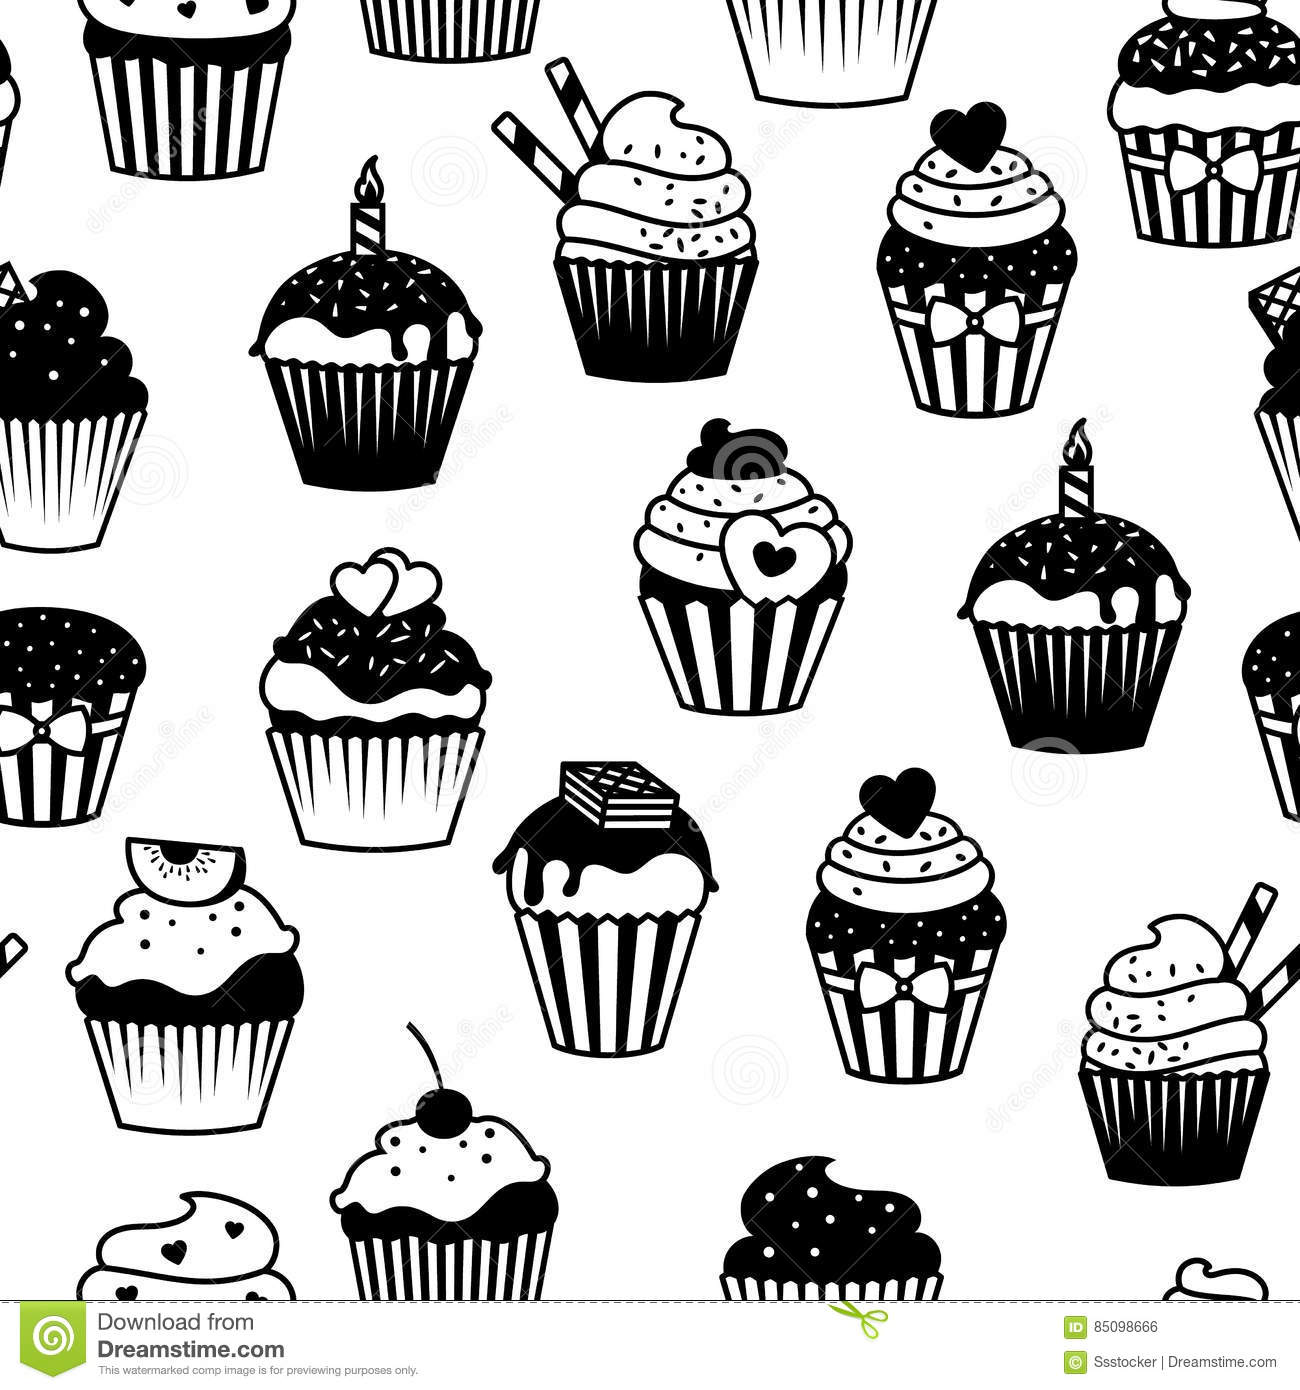 Black And White Cupcakes Seamless Pattern Stock Vector